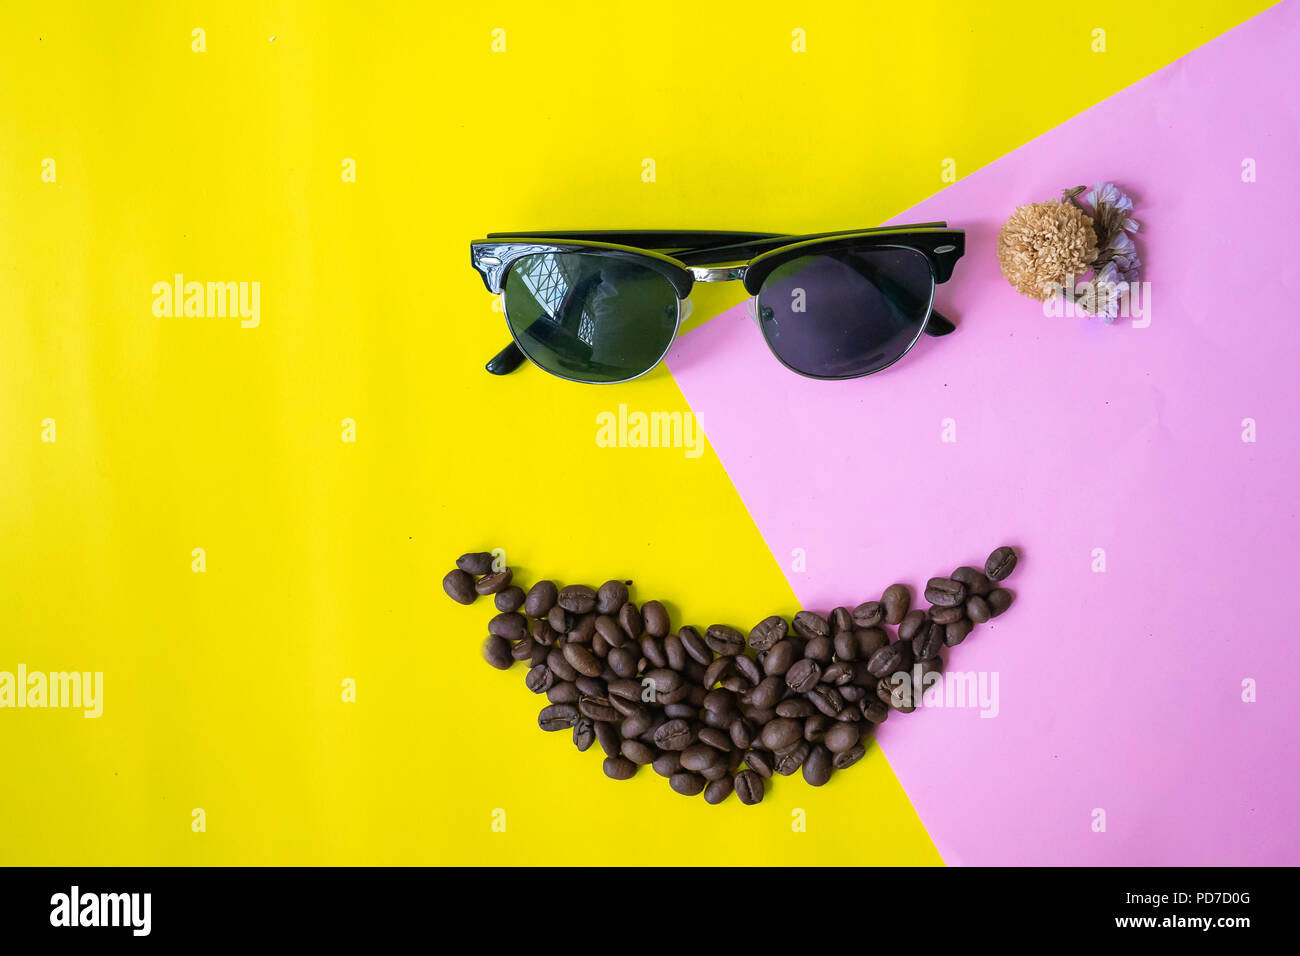 top view flat layer funny face made from coffee beans in smile  icon shape , wooden grinder basket and sun glasses on two tone multicoloured  backgrou - Stock Image